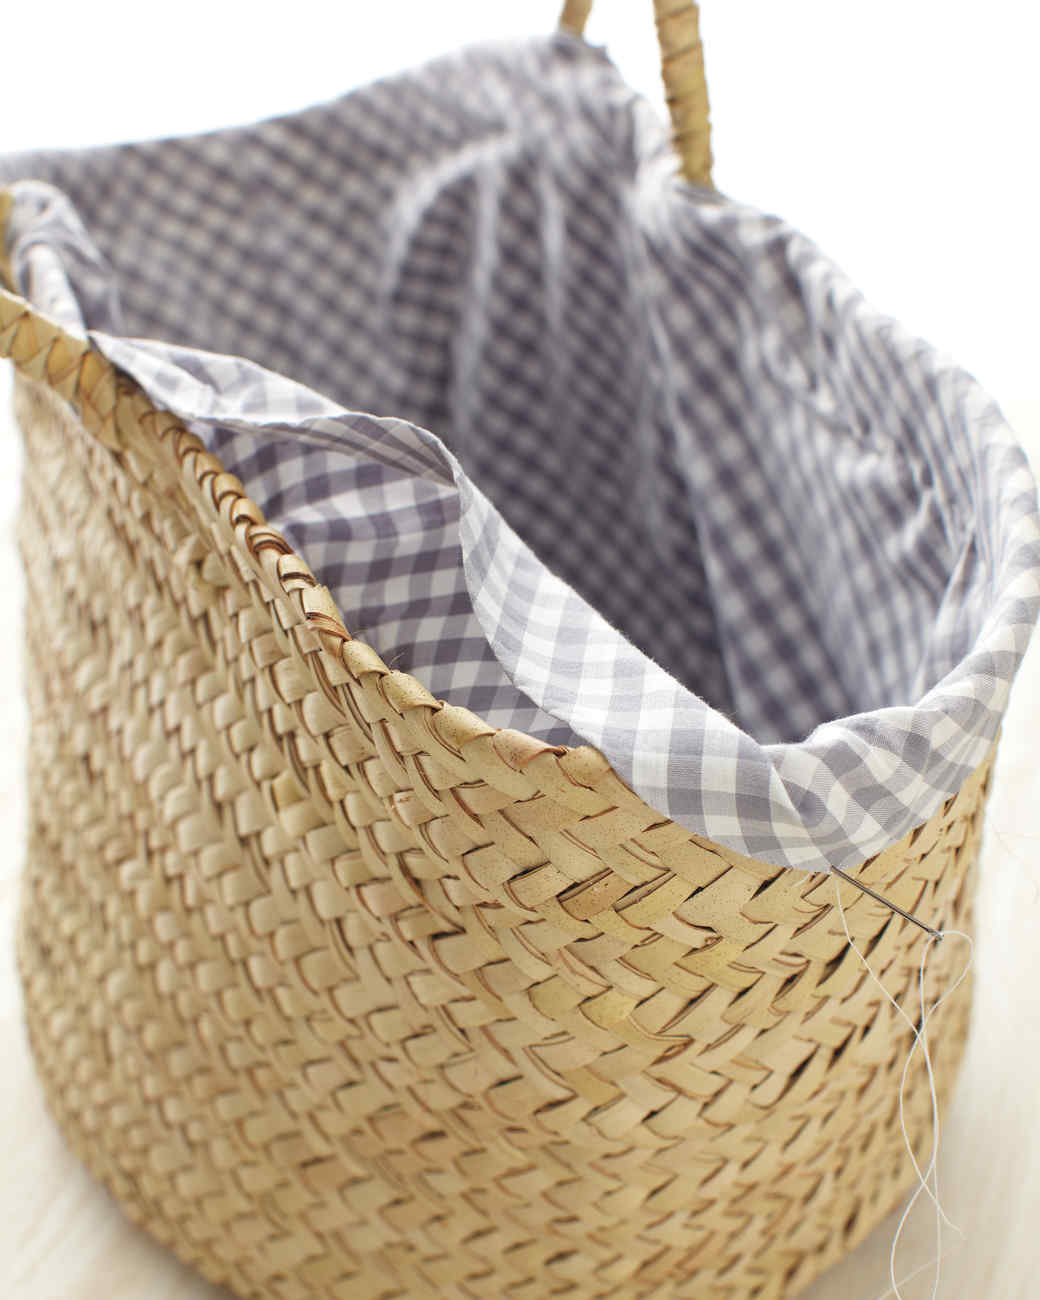 gingham-basket-how-1011mld107648.jpg